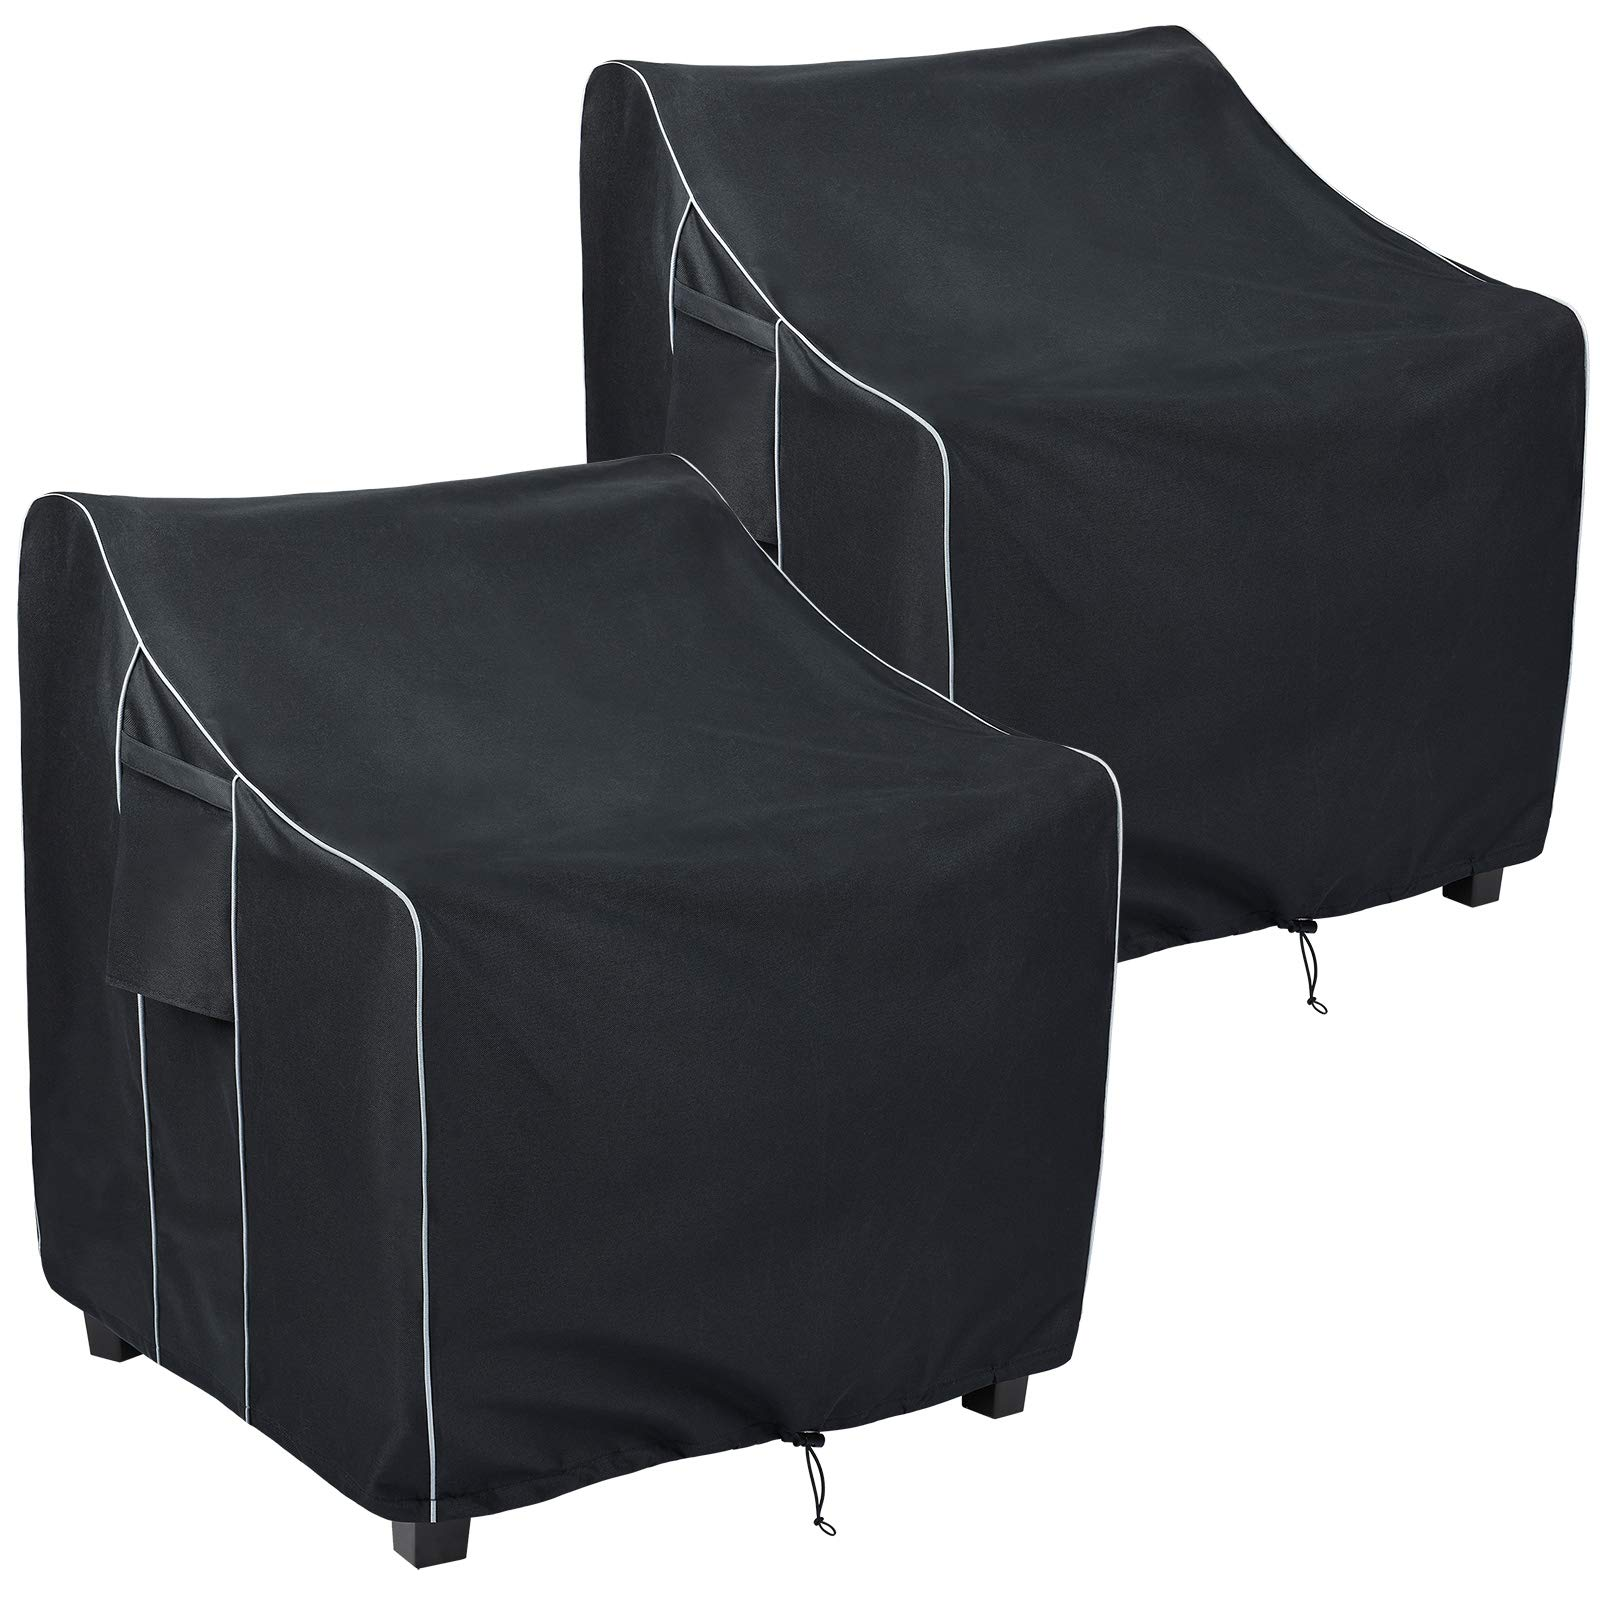 FORSPARK Patio Chair Covers Waterproof, Heavy Duty Outdoor Furniture Chair Covers, Fits up to 31.5 x 33.5 x 36 inches (W x D x H) 2 Pack